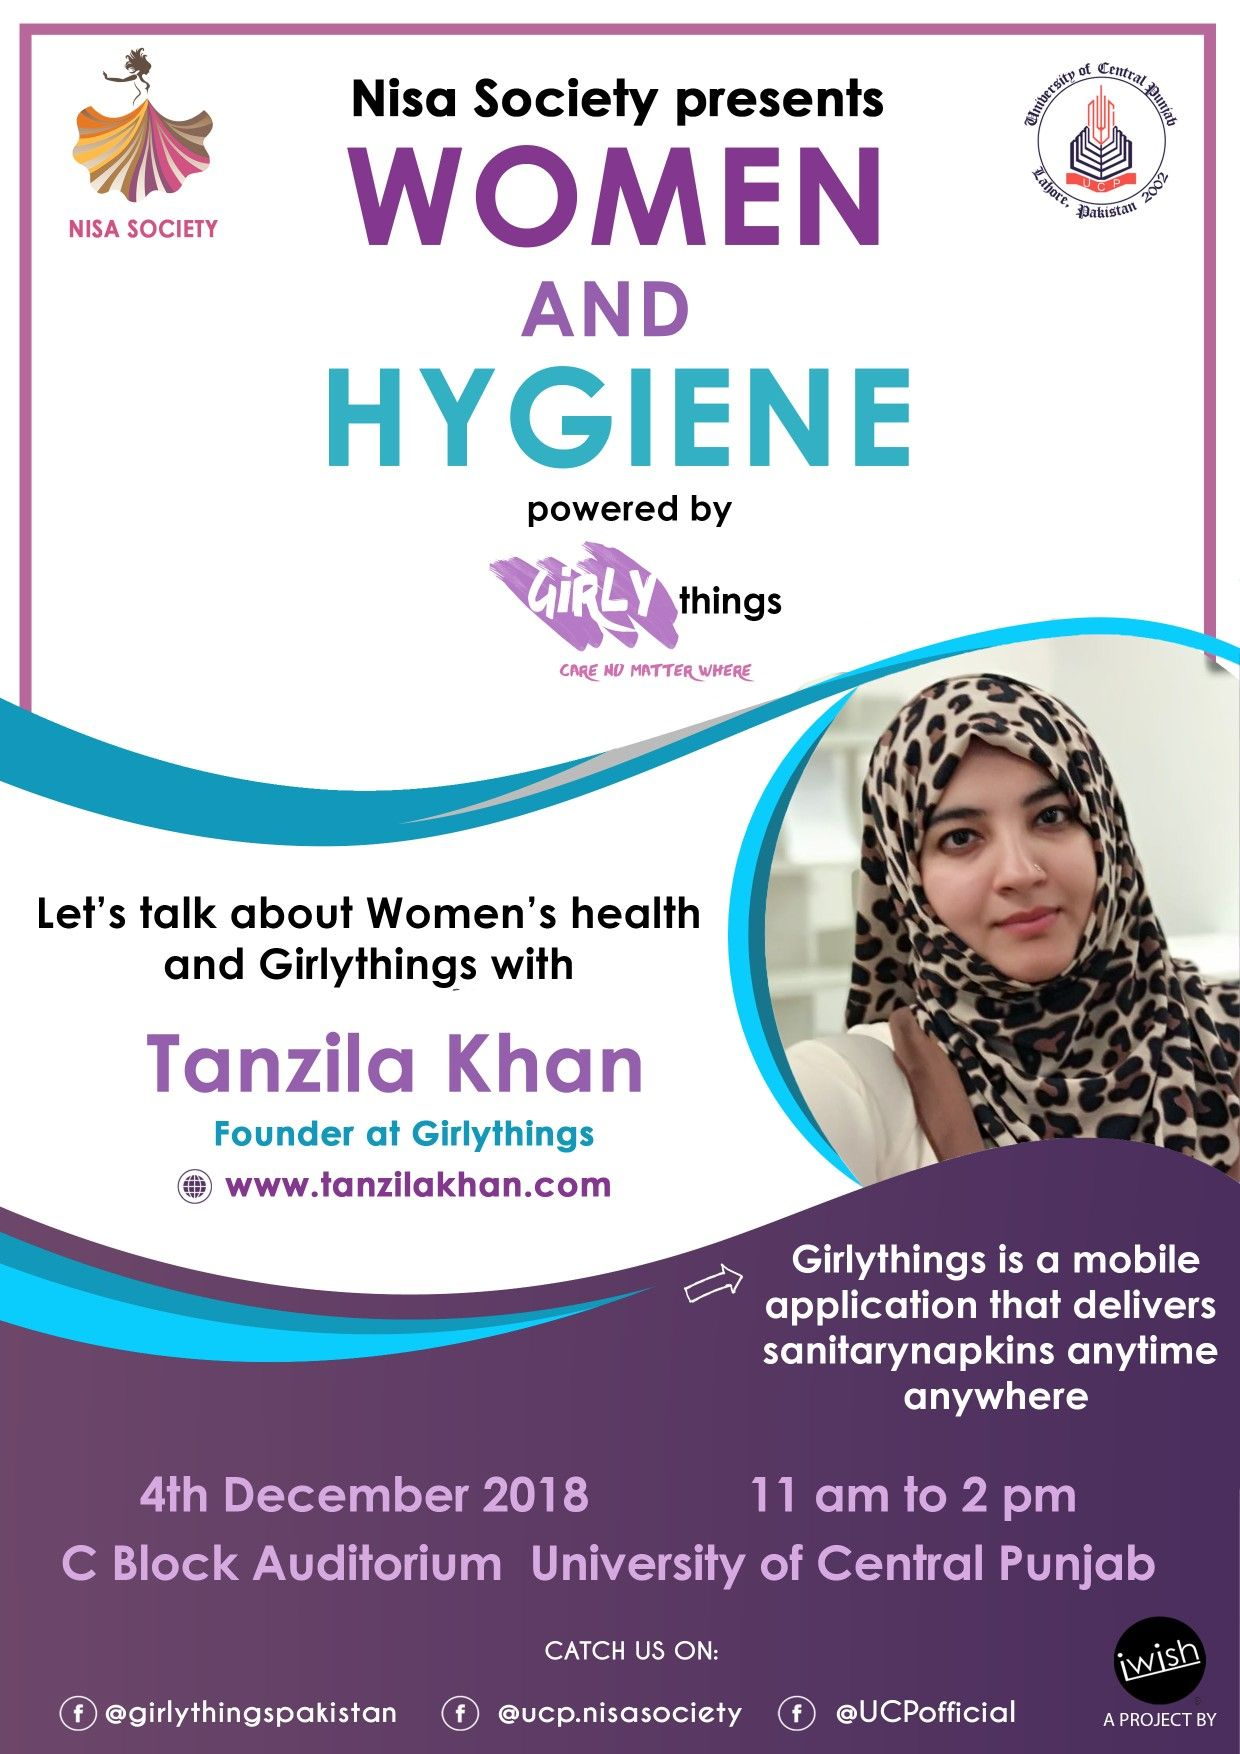 Girlythings panel discussion poster design women hygiene